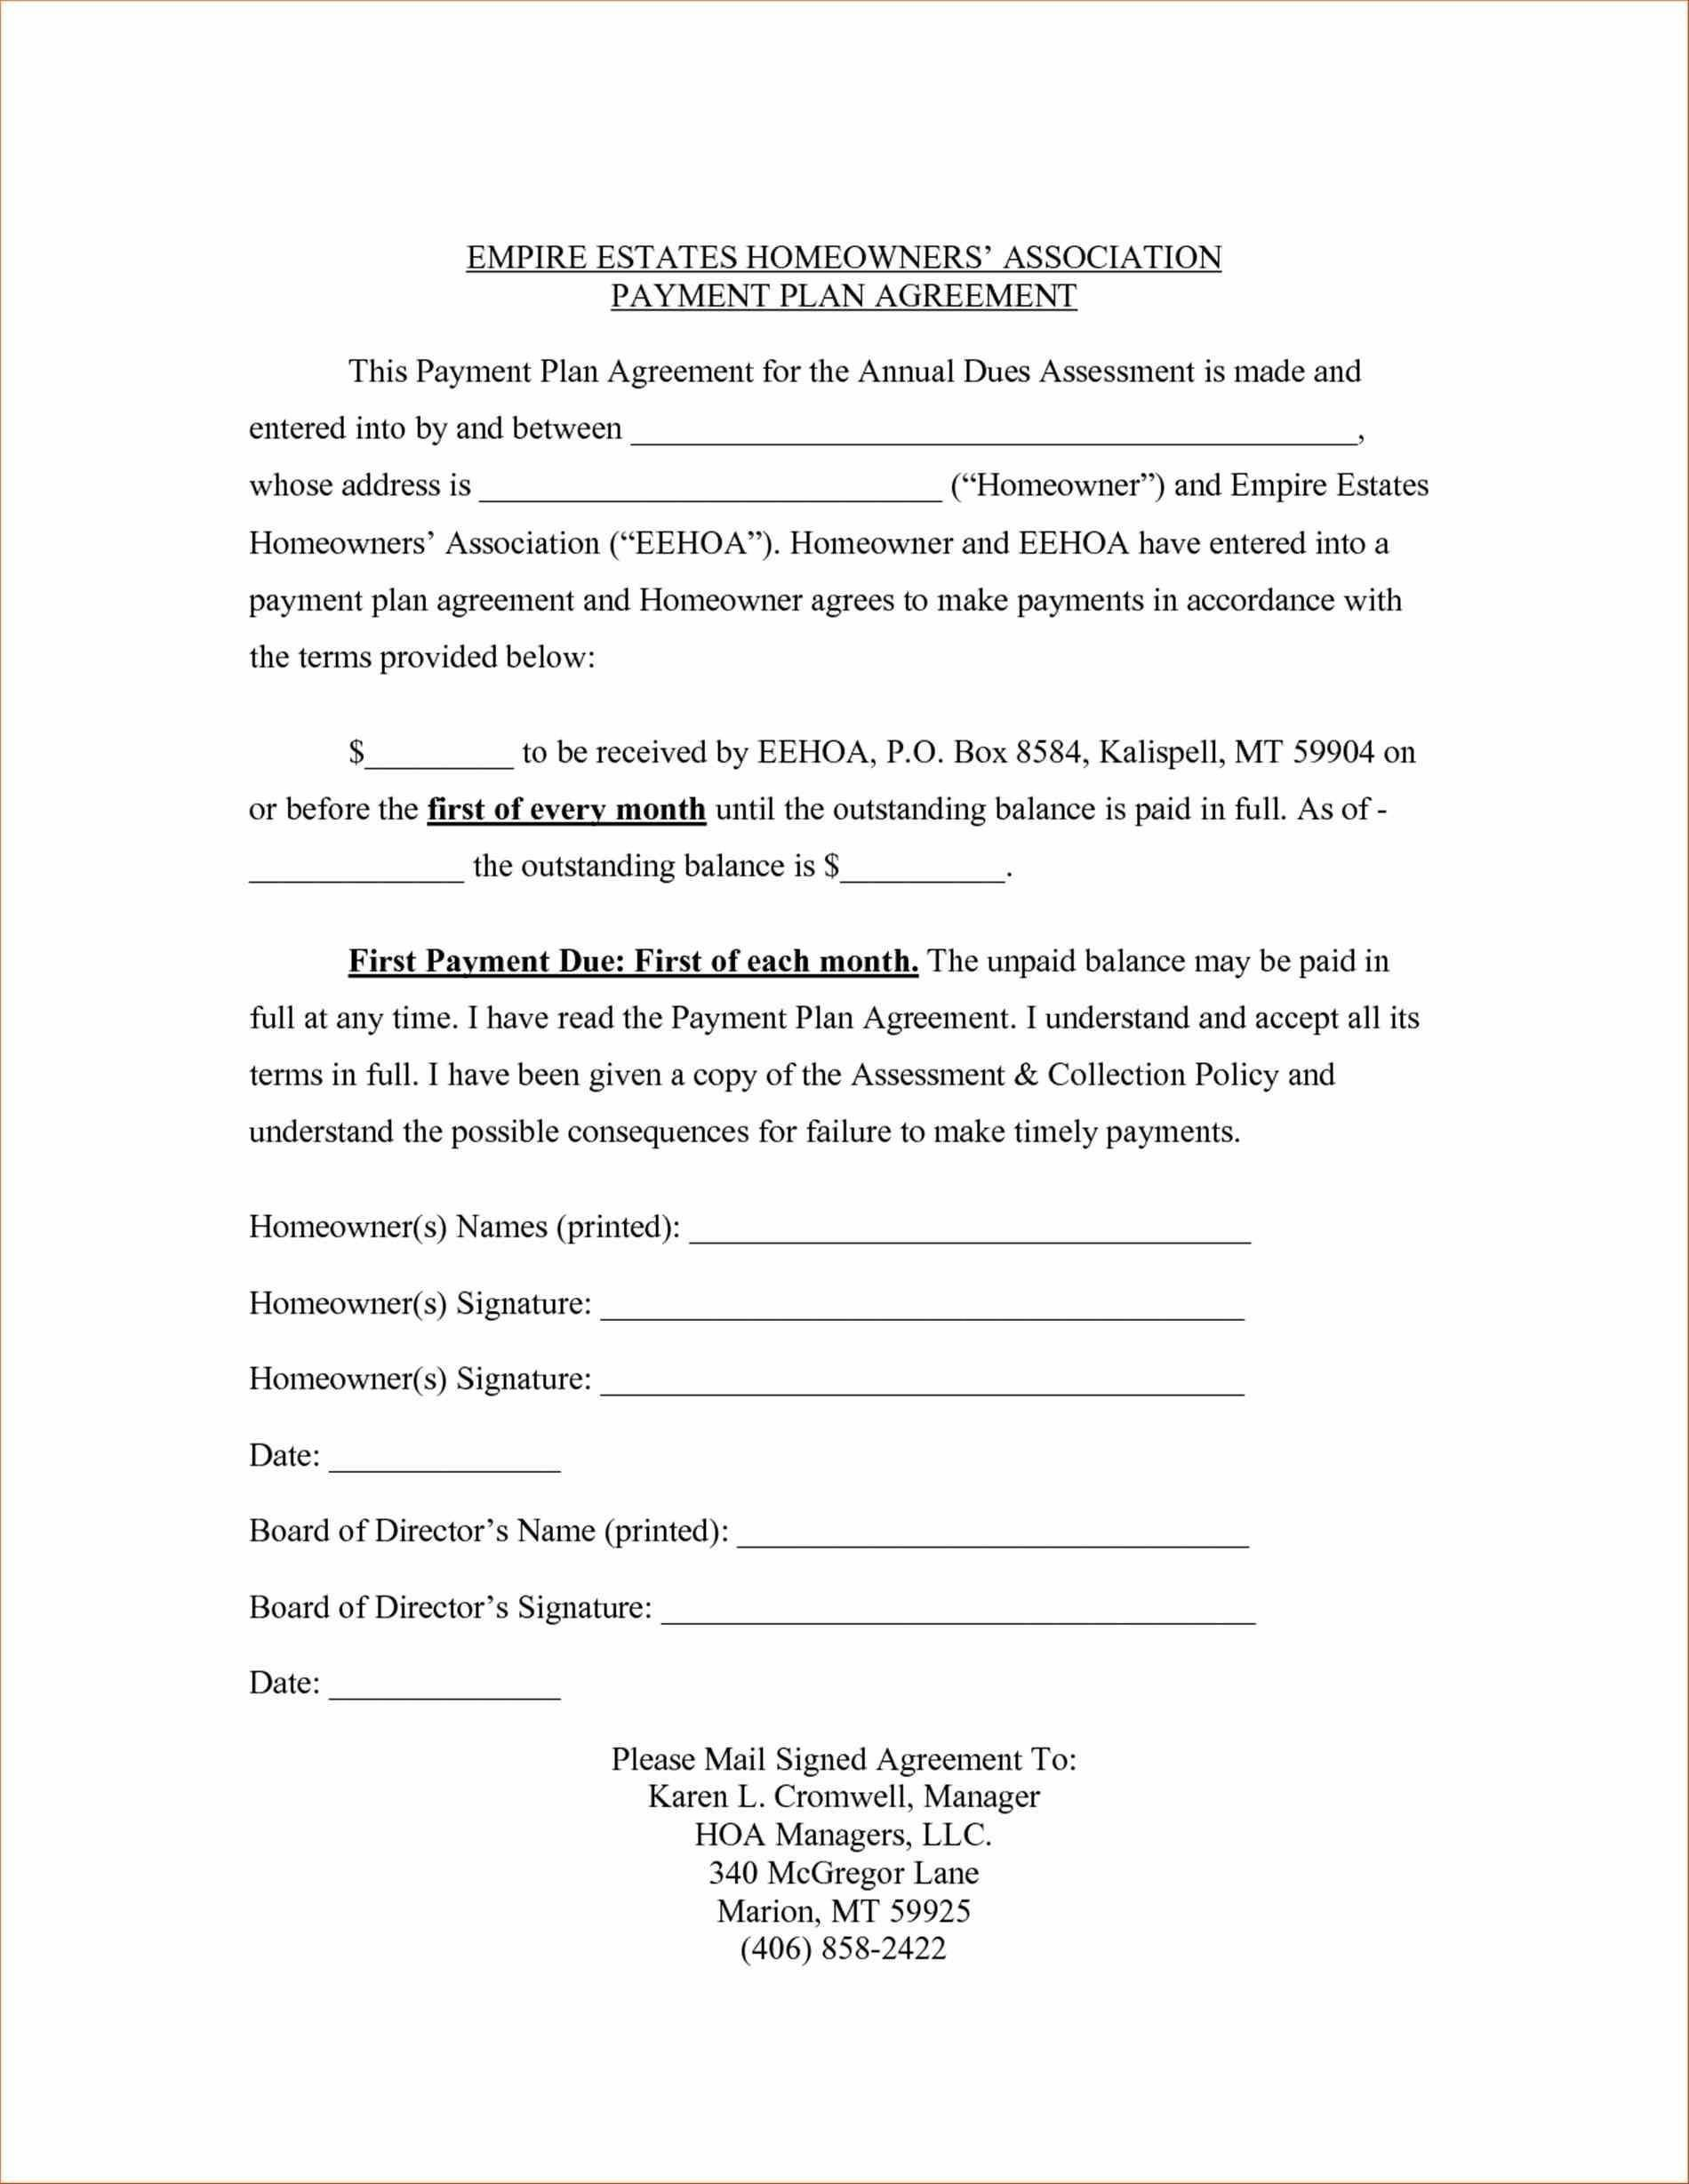 Free Contractor Agreement Template Luxury Image Result For Payment Plan Contract Agreement Te Payoff Letter Contract Template Payment Agreement